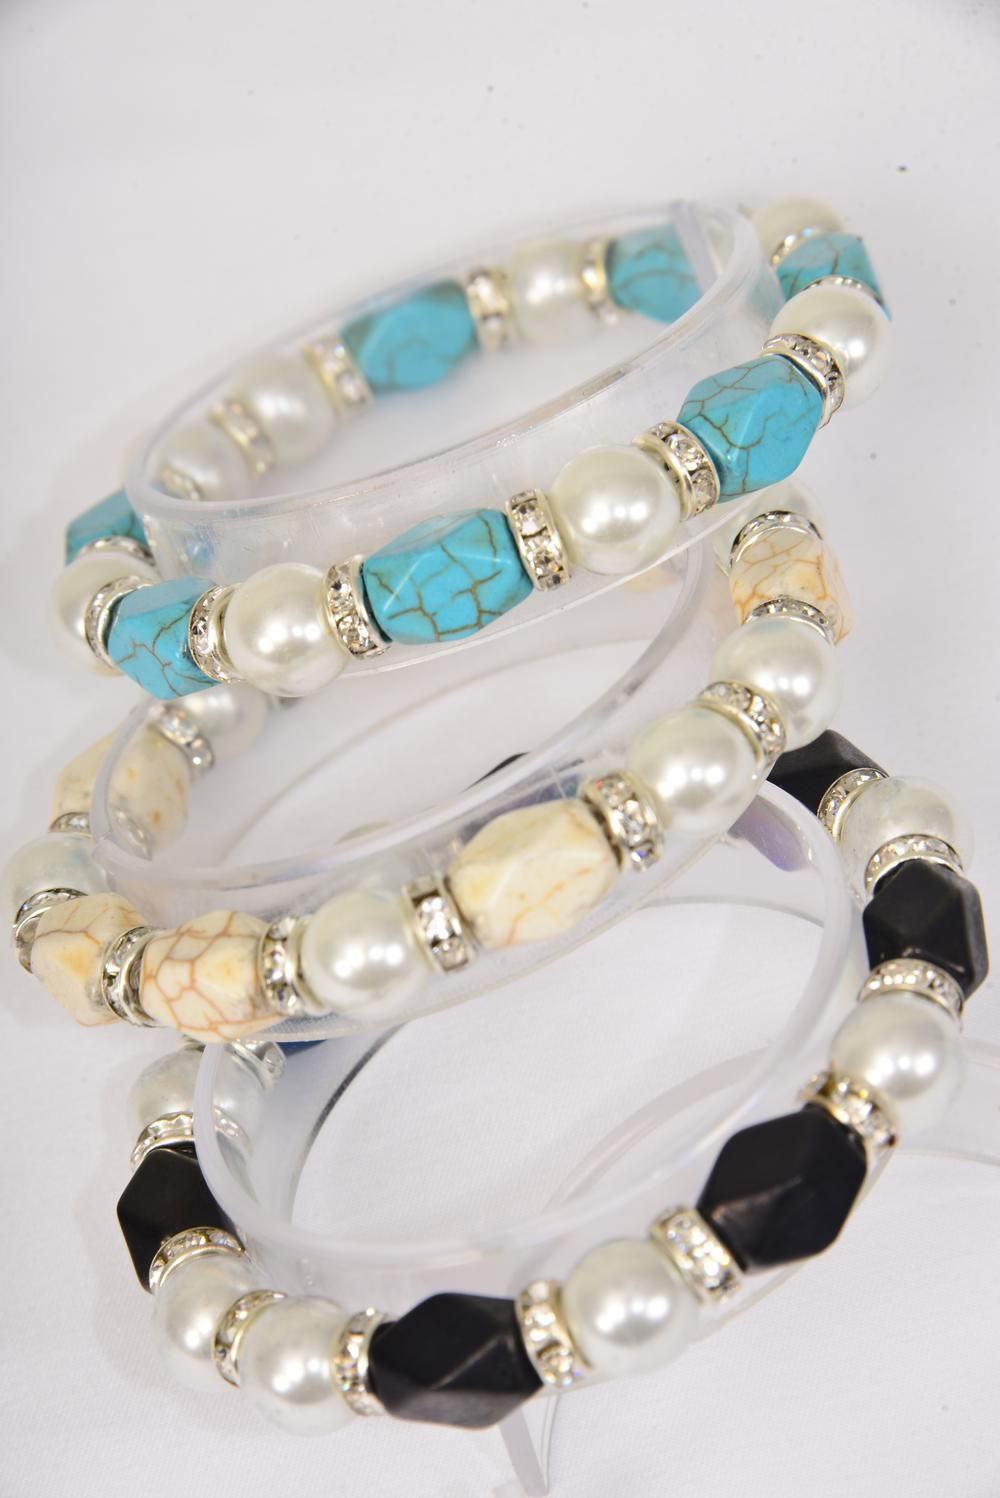 Bracelet 12 mm Glass Pearl & Semiprecious Stone & Rhinestone Bessel Mix Stretch/DZ **Stretch** 3 Ivory,3 Black,6 Turquoise Mix,Hang Tag & Opp Bag & UPC Code -